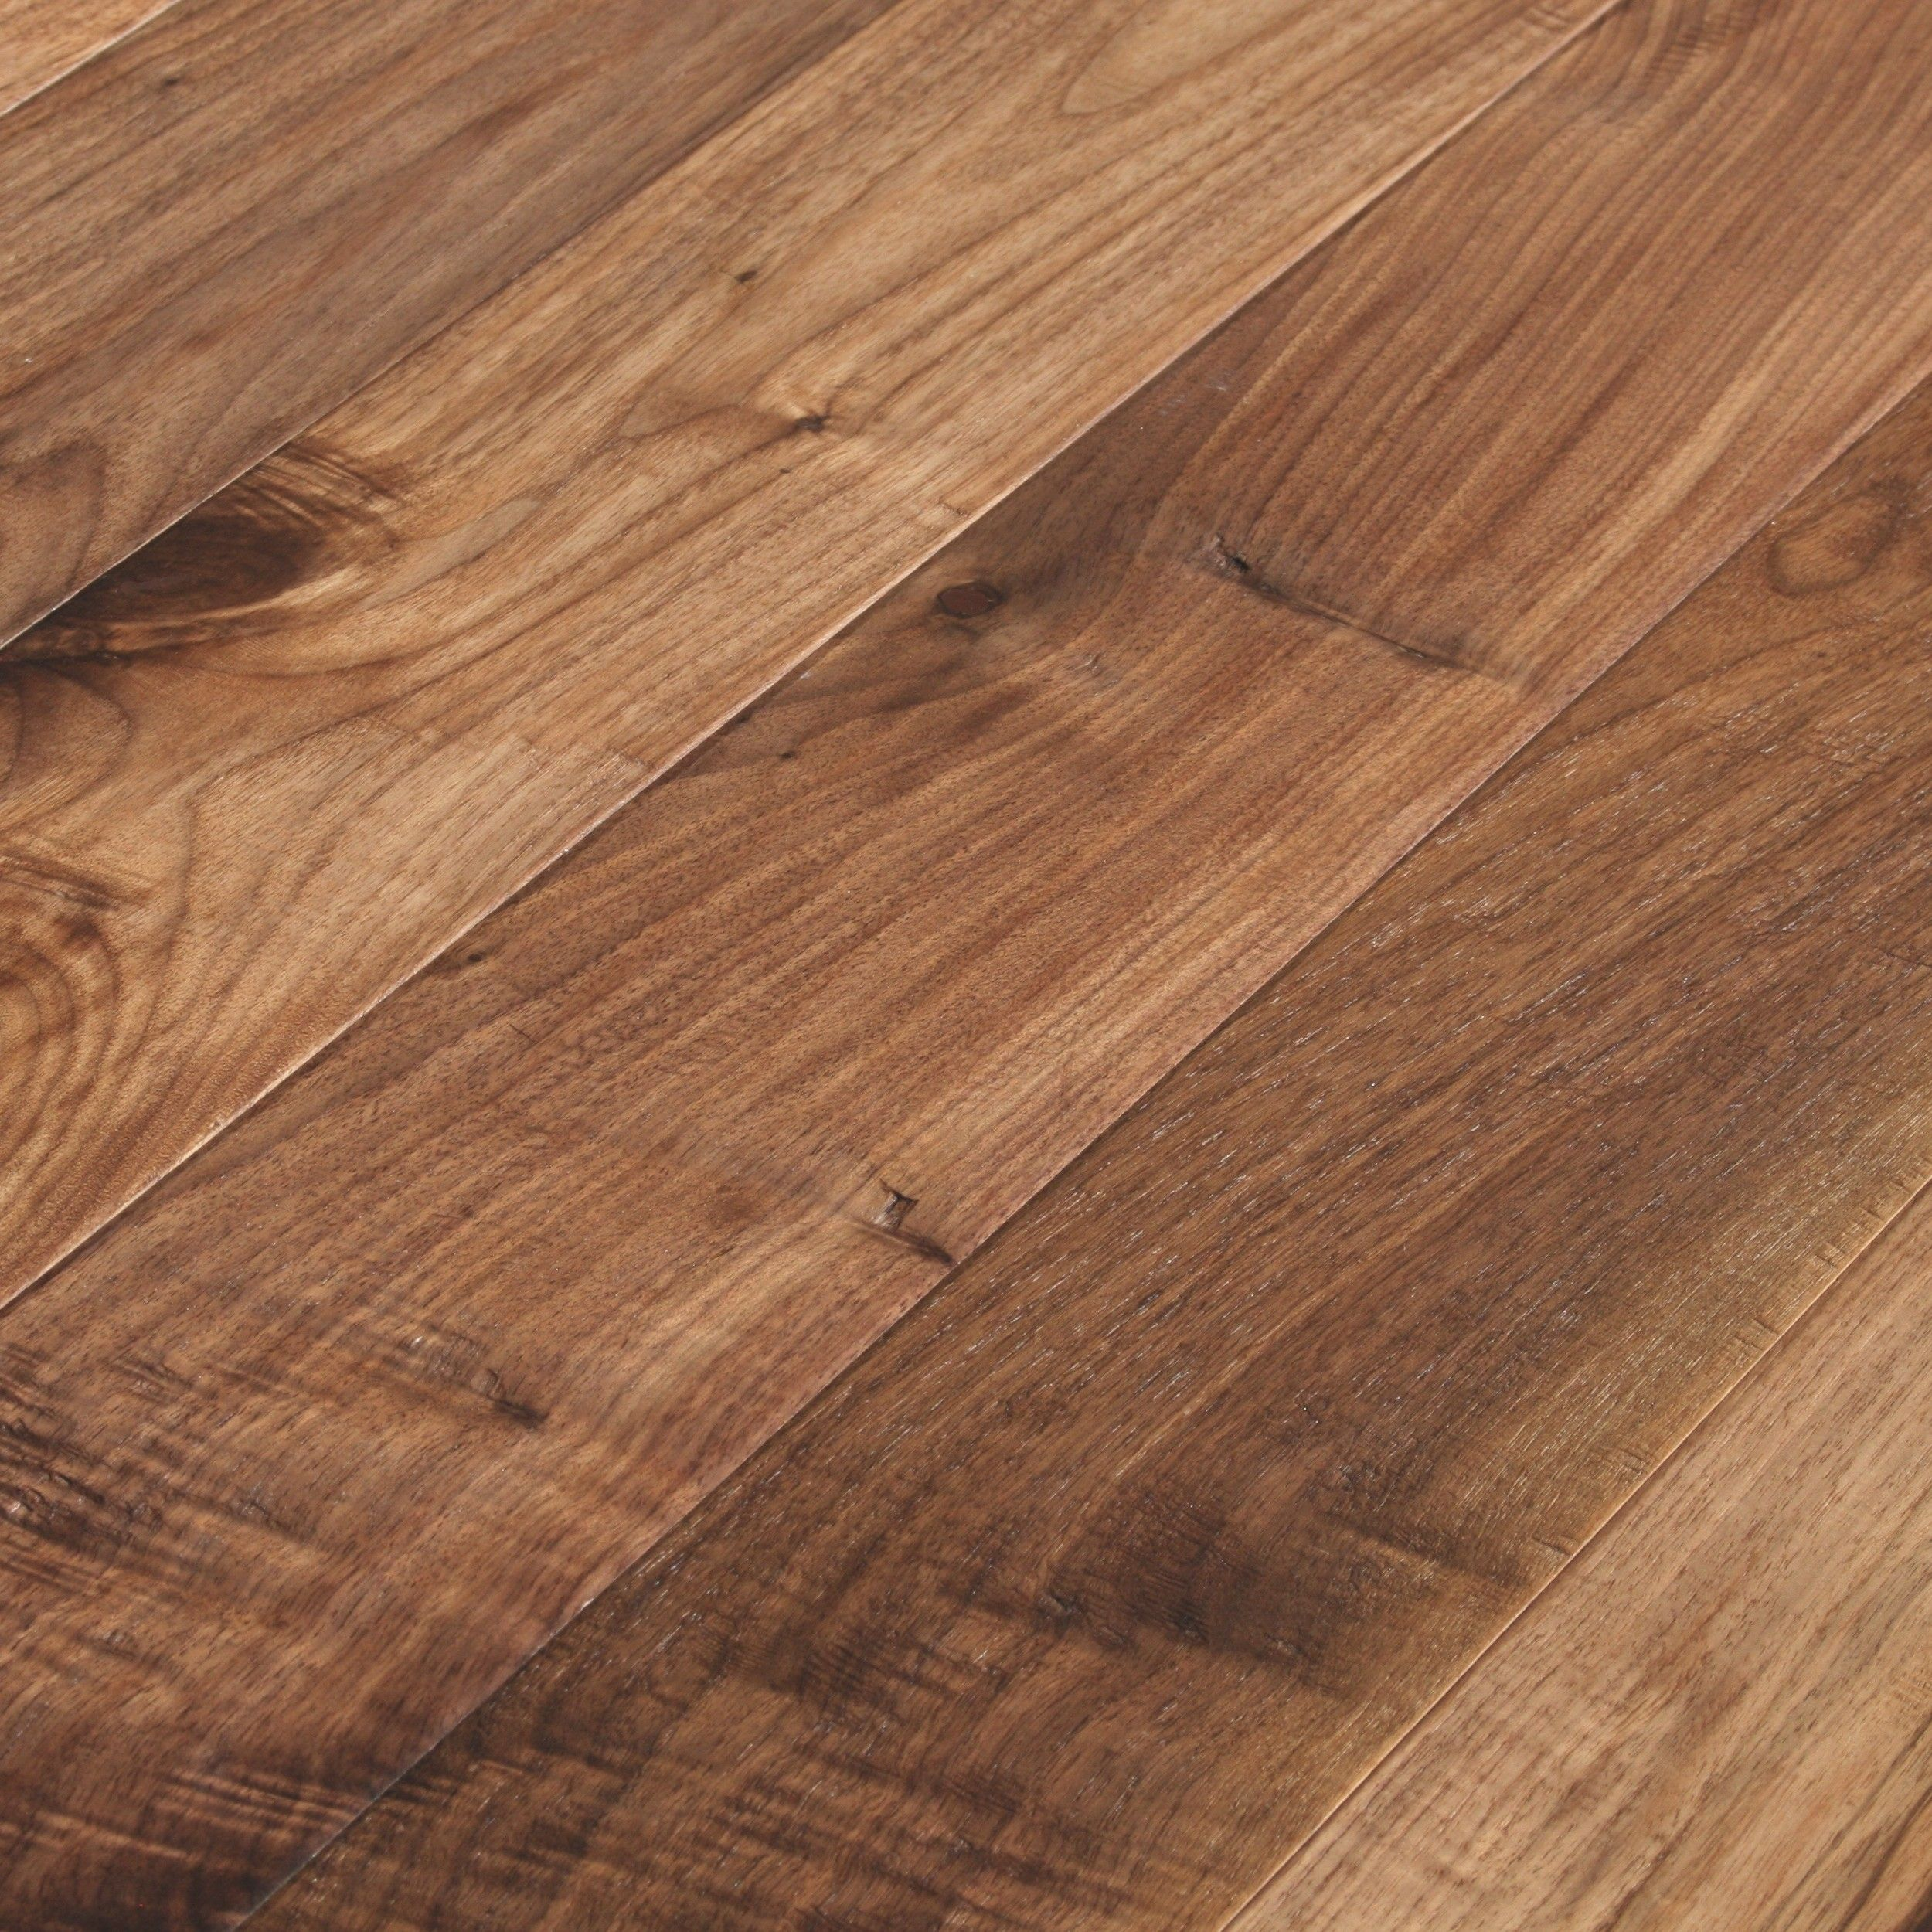 Millennium walnut oiled natural hand scraped flooring for Wood flooring natural